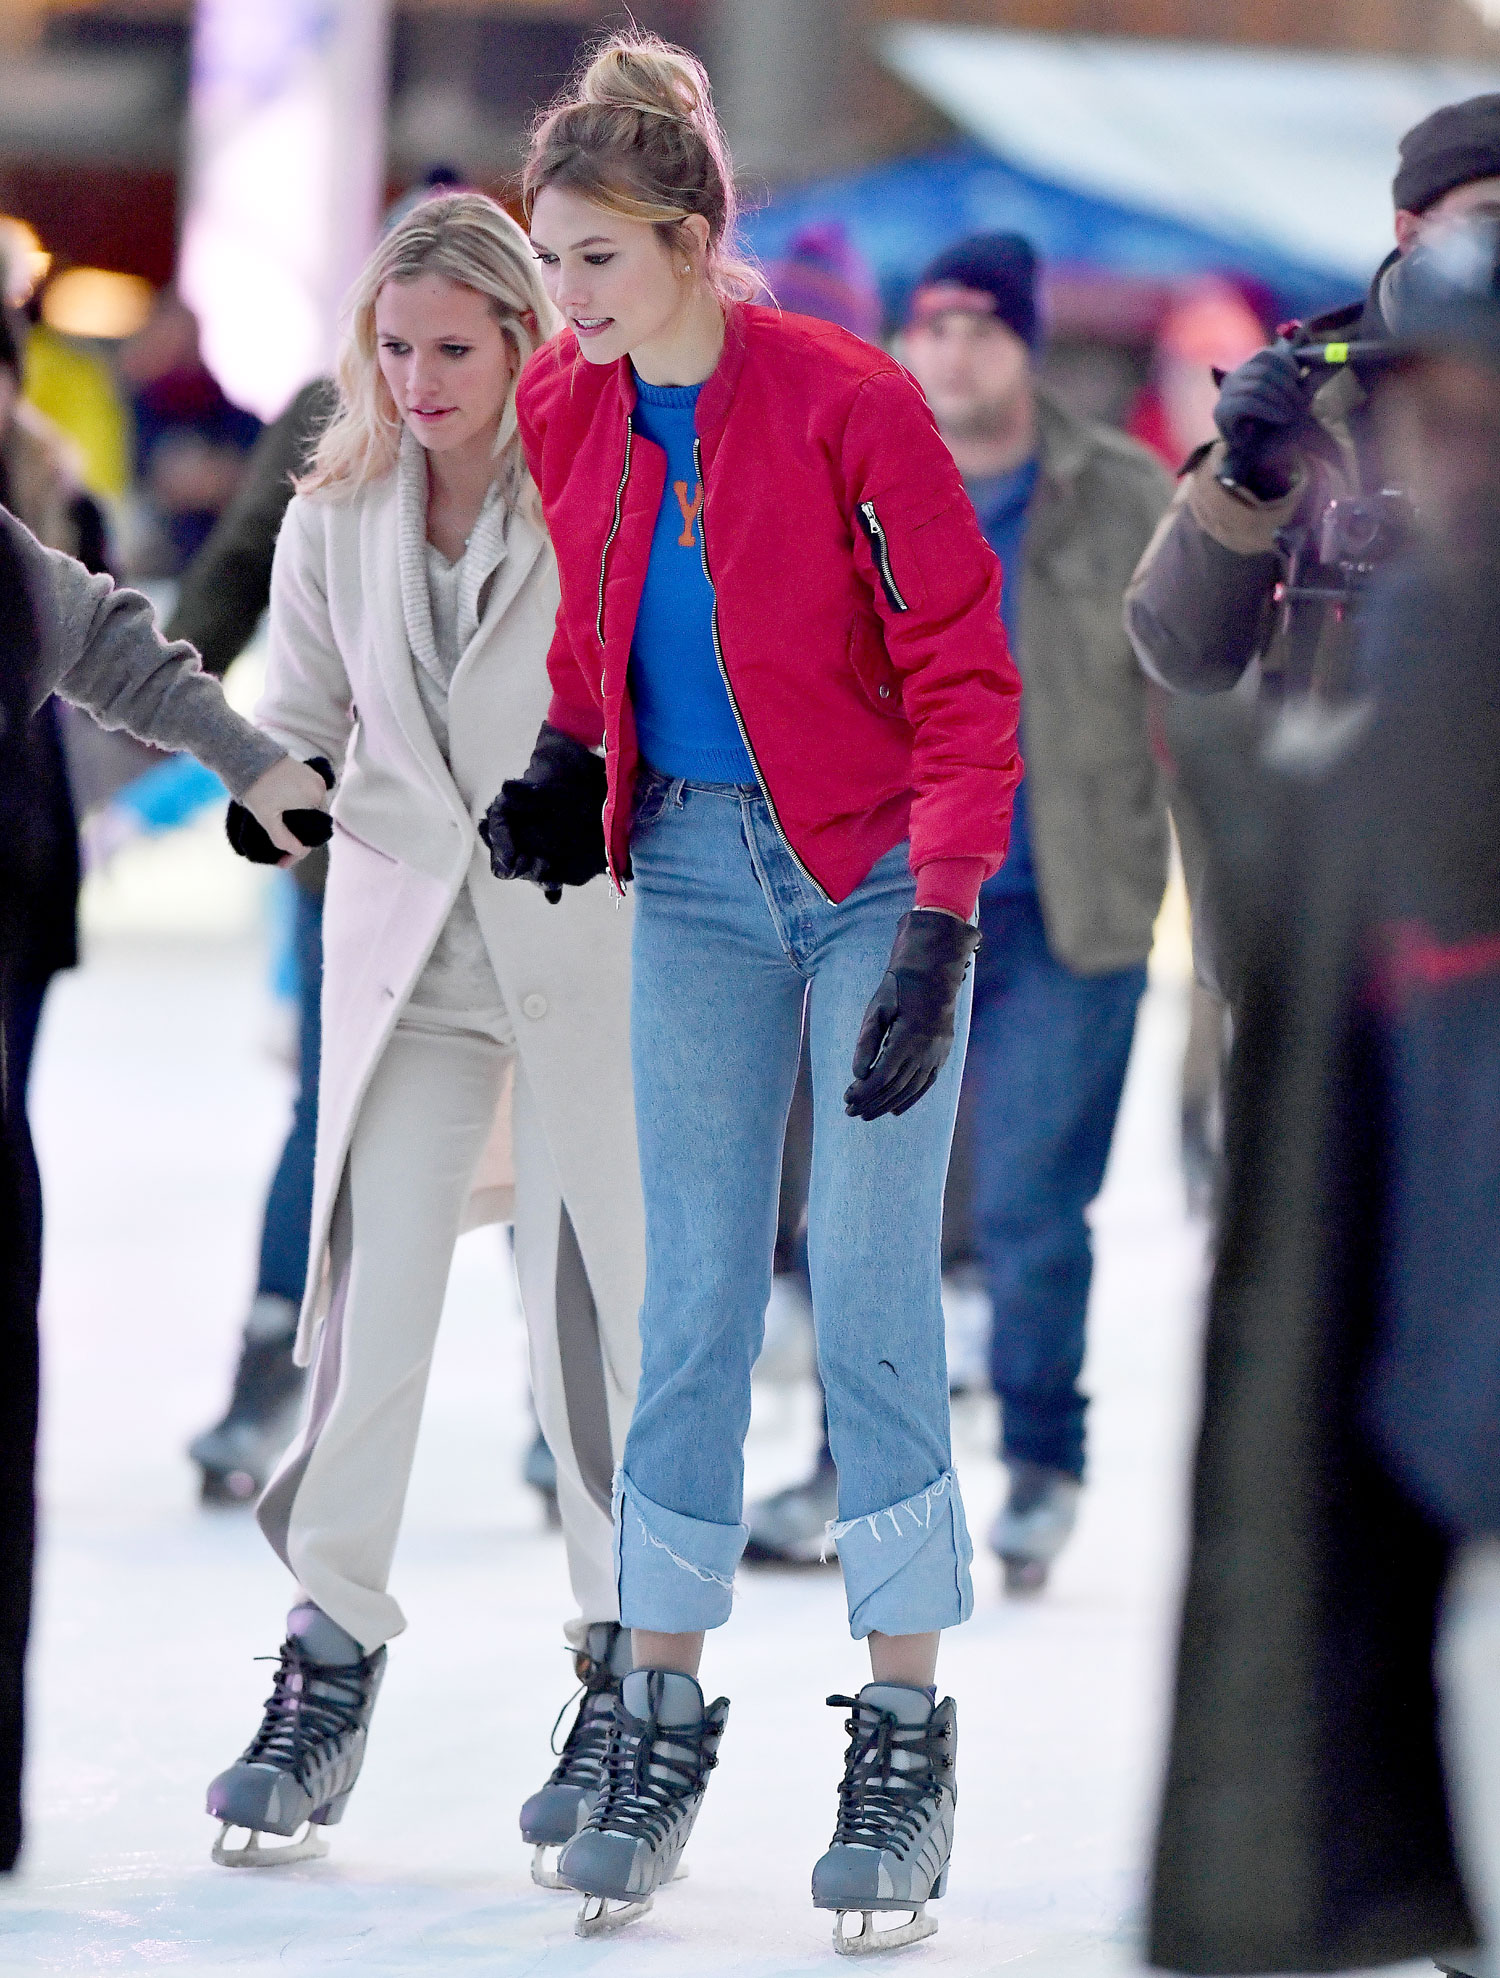 Karlie Kloss goes skating with her mother and sisters at the Winter Village at Bryant Park in New York City